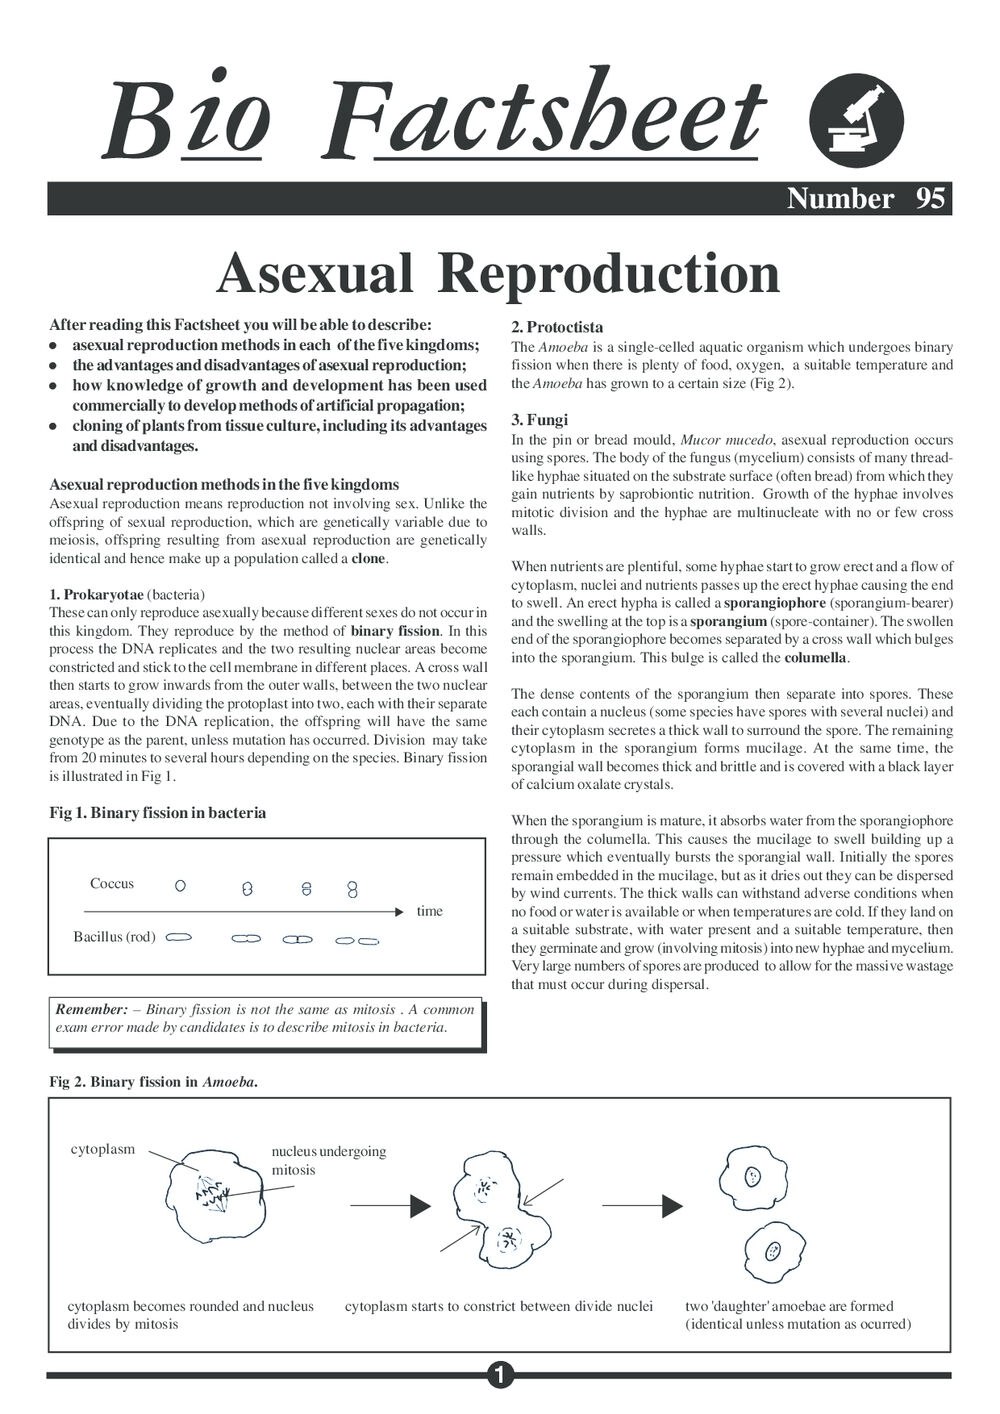 Five methods of asexual reproduction